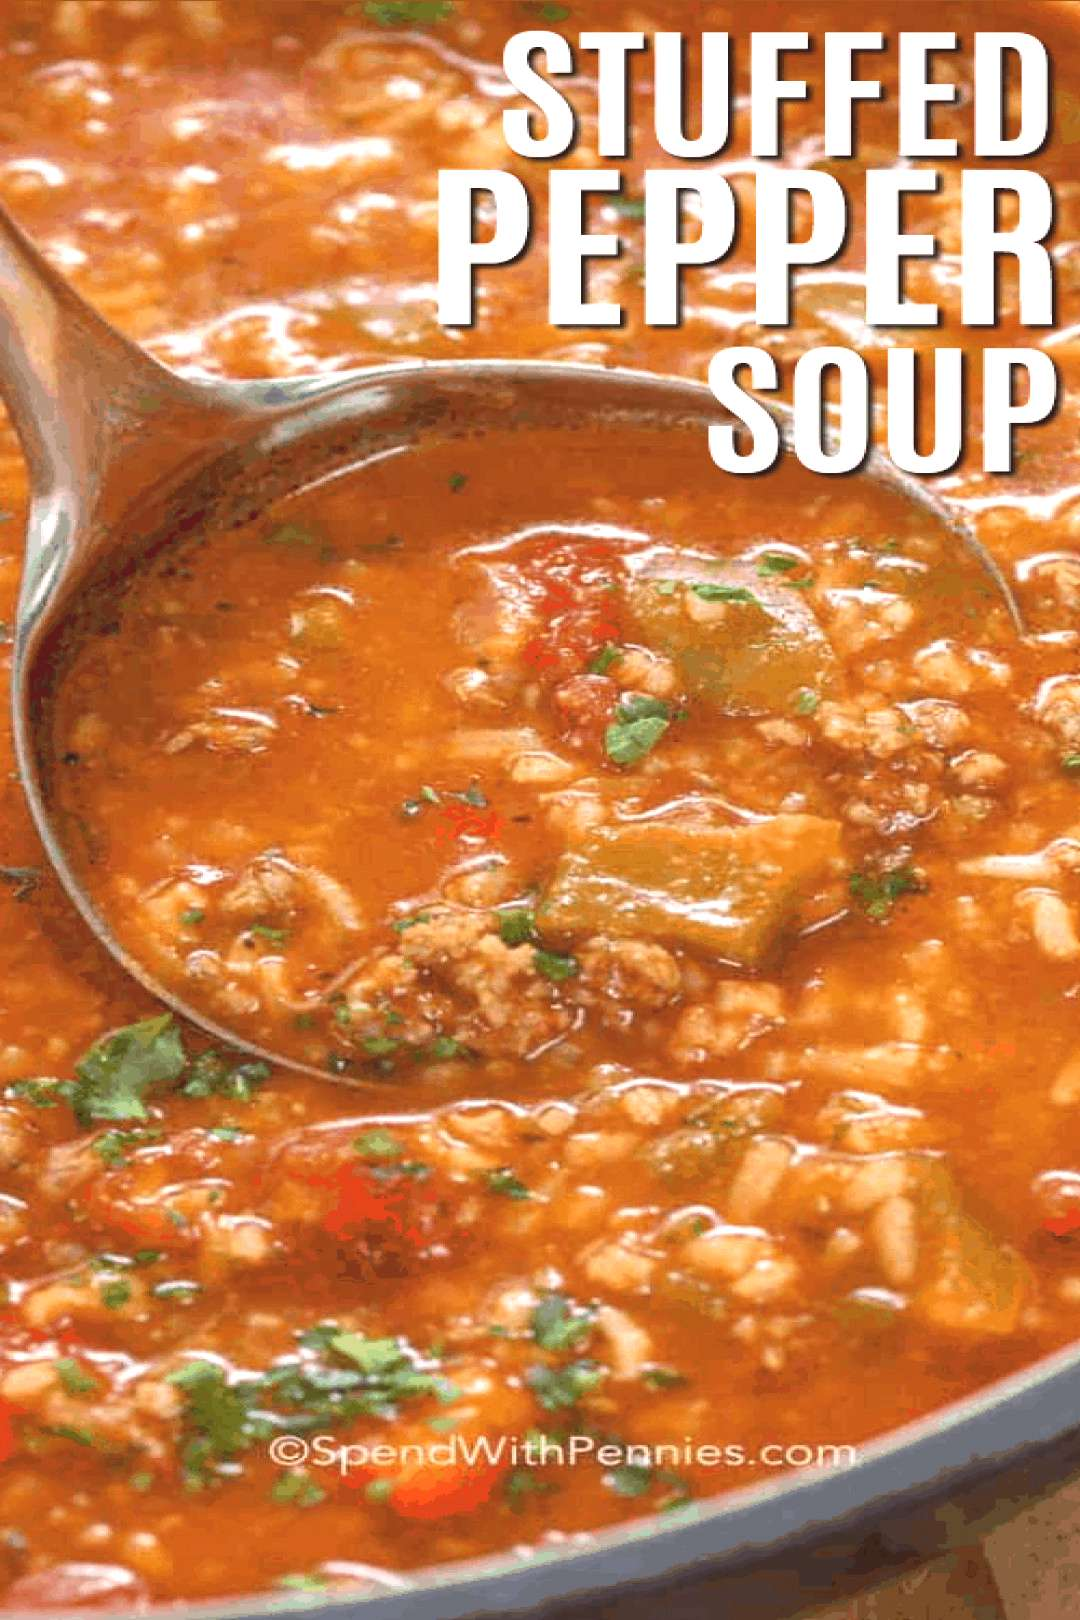 Stuffed Pepper Soup - Spend With Pennies | | Stuffed Pepper Soup is an easy soup recipe. In this f